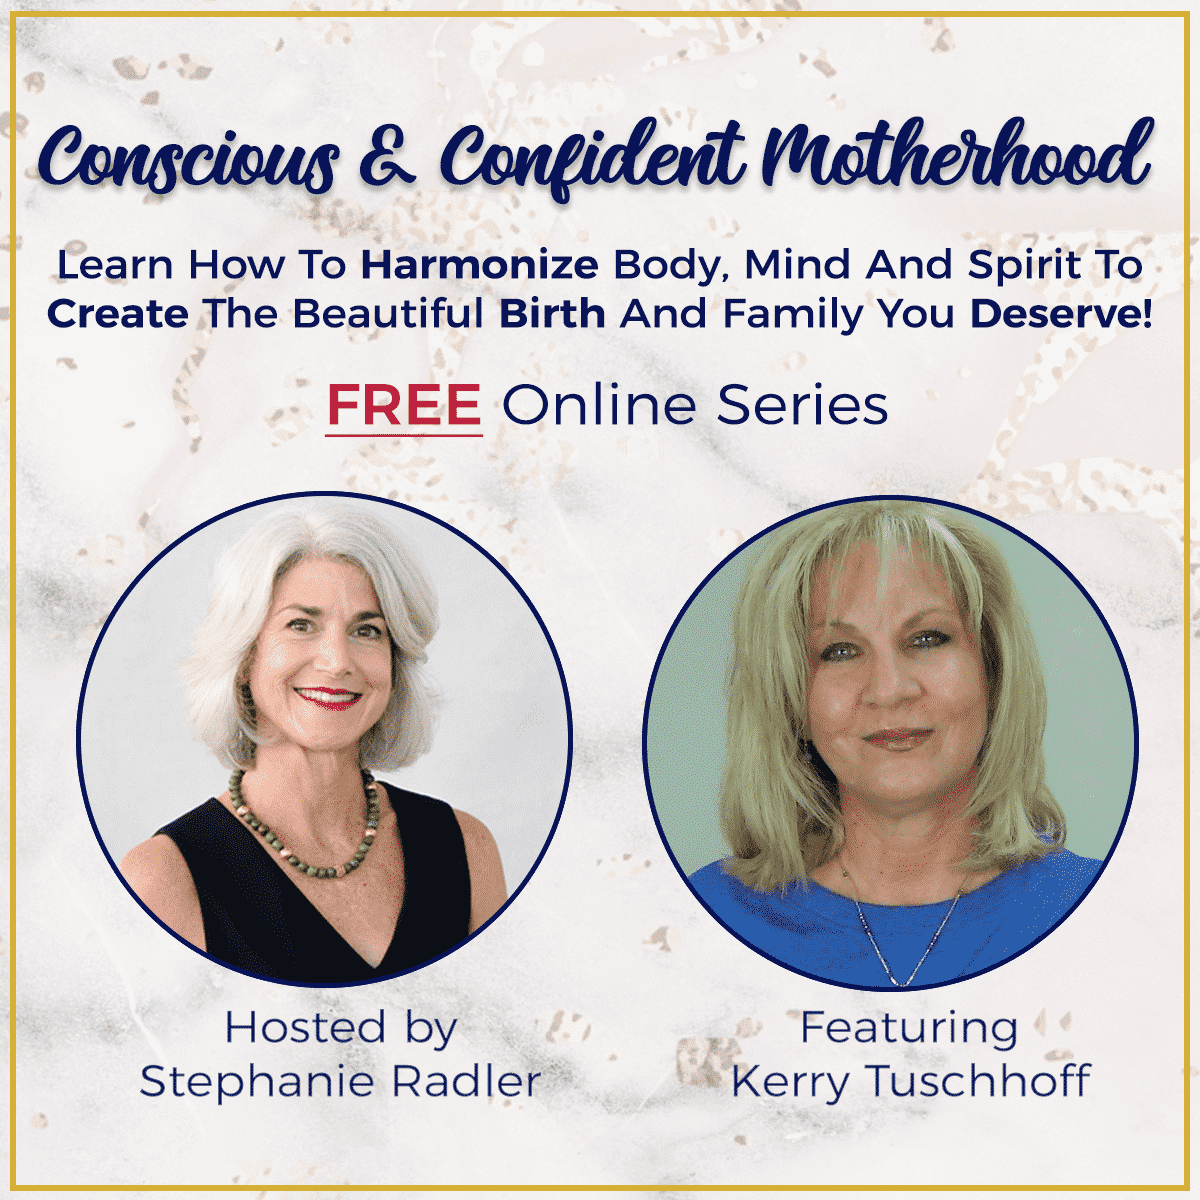 Kerry Tuschhoff on podcast - Conscious and confident Motherhood